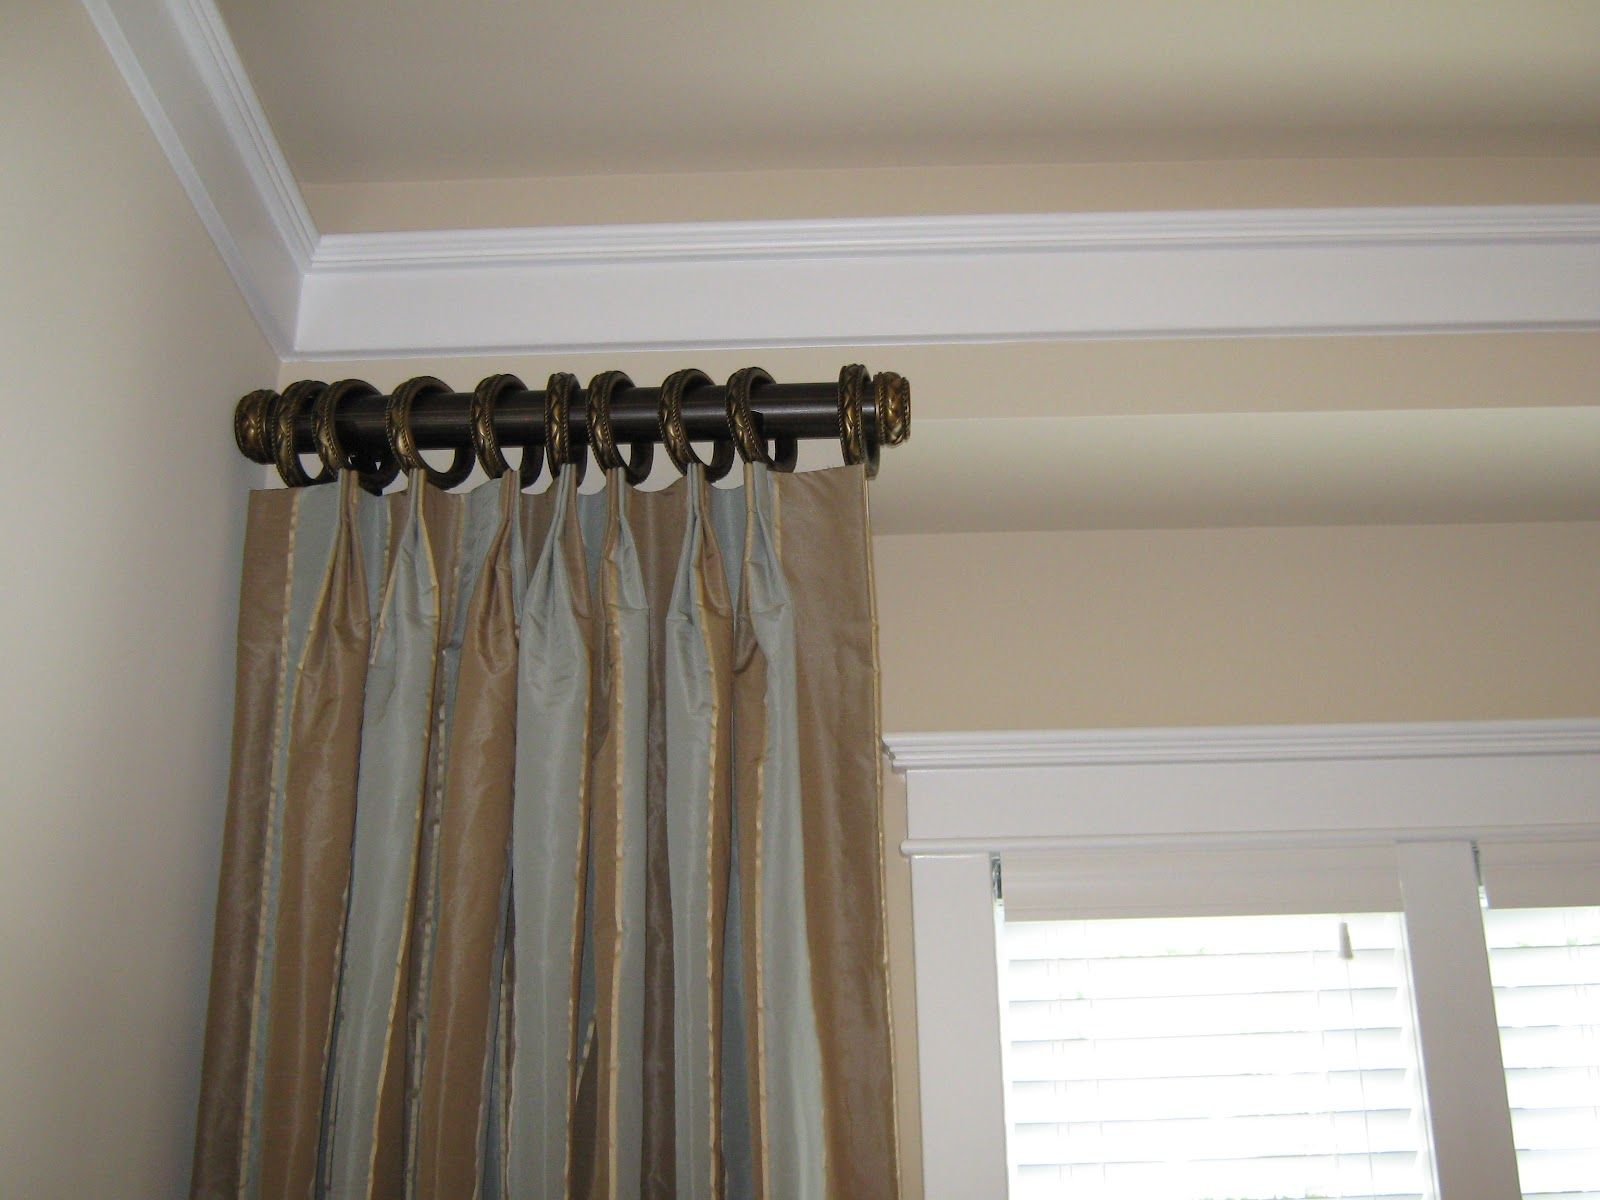 Short Curtain Rods For Panels Awesome Decoration On Home Gallery Design Ideas Interior Design